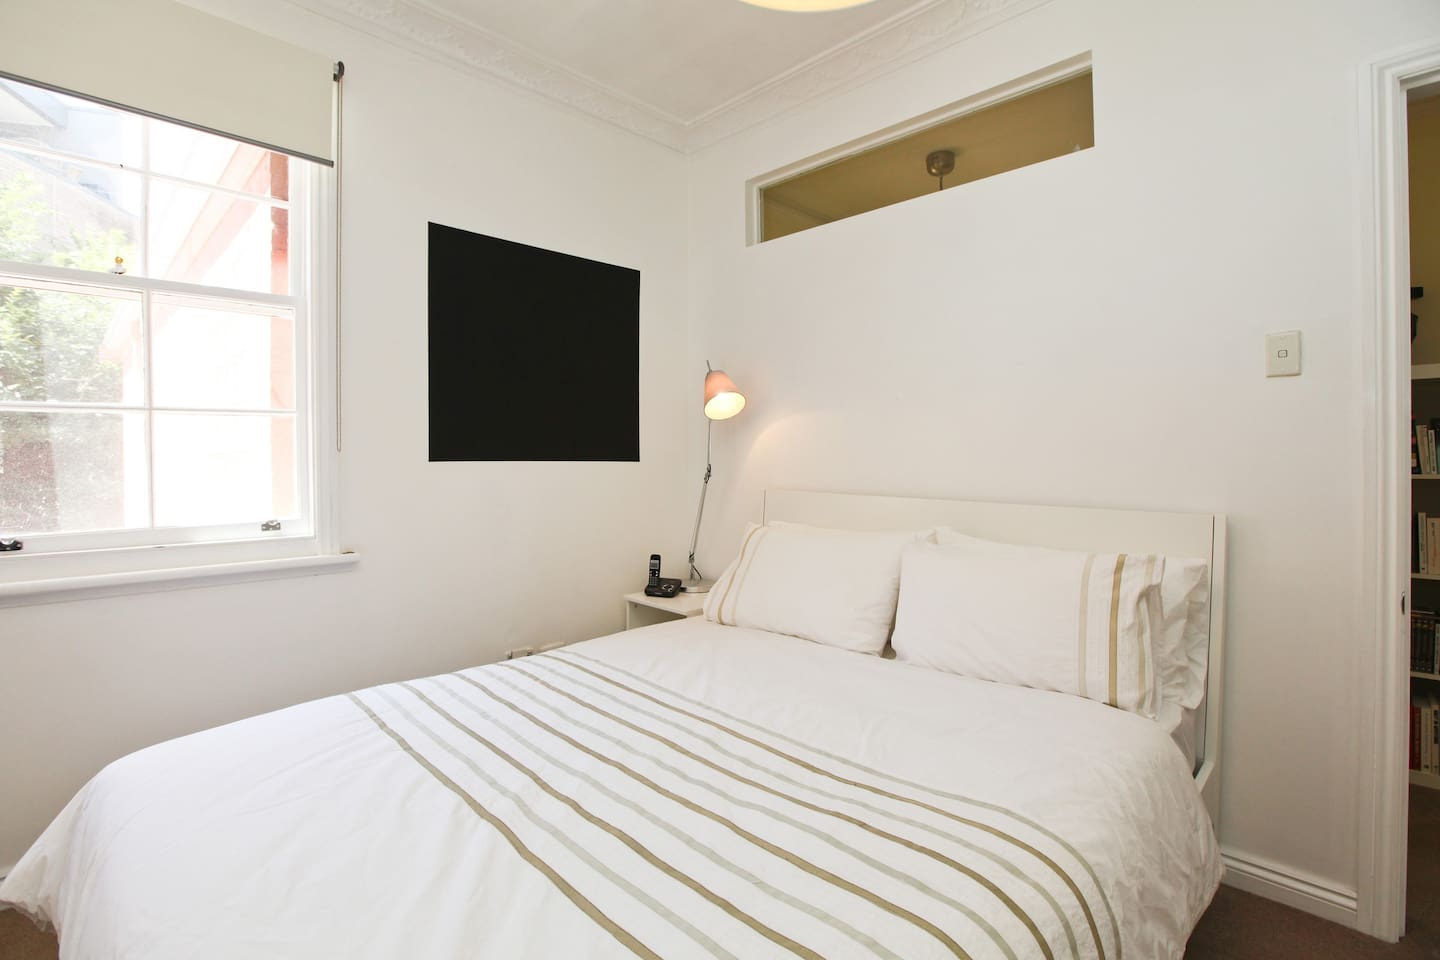 Bedroom1 - bright and sunny with reverse cycle air conditioner